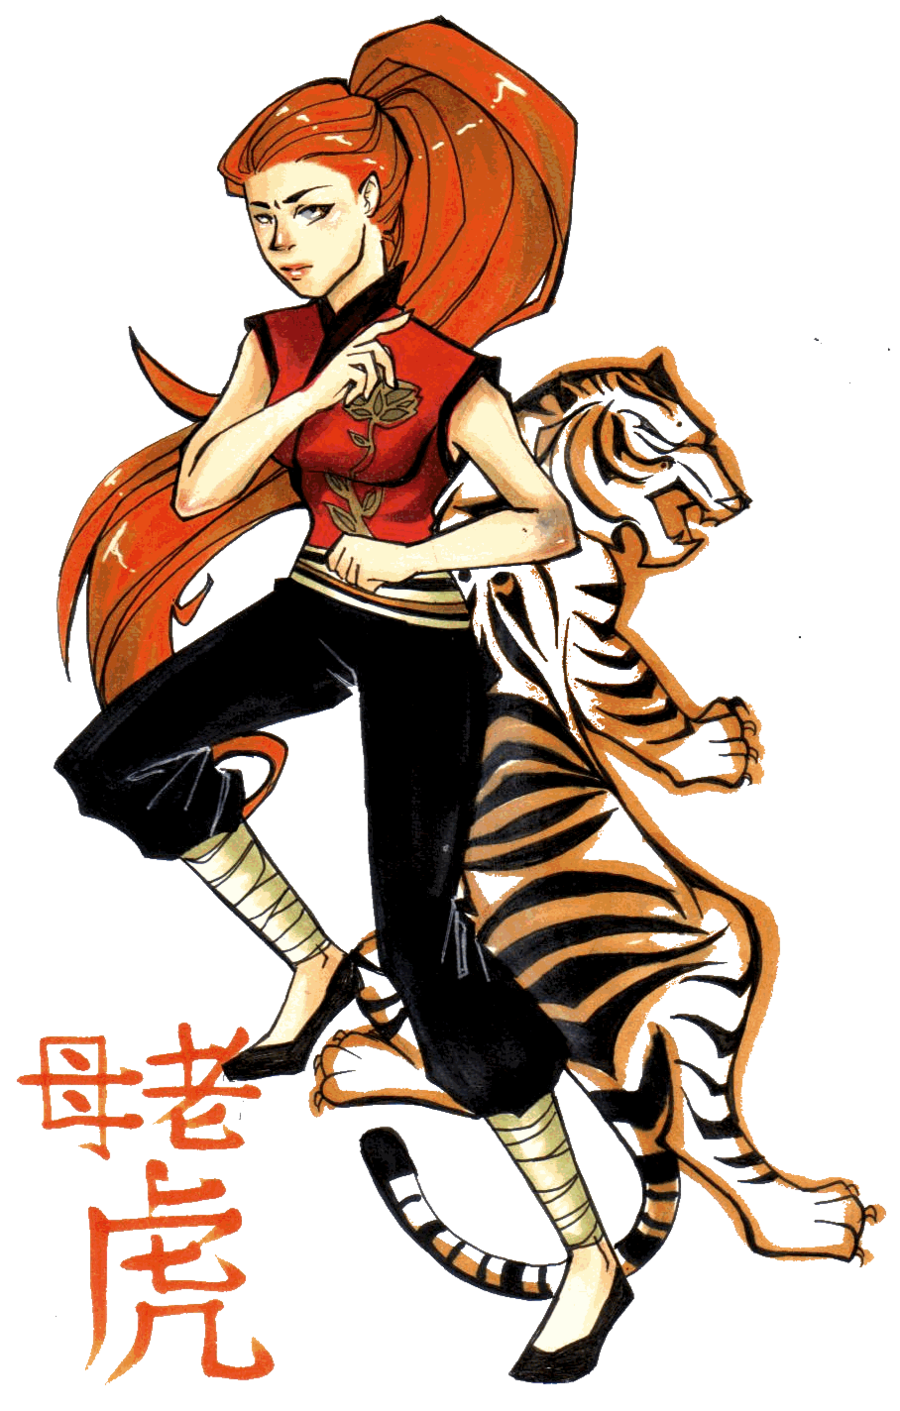 ... Kung Fu Panda. Humanized Tigress  sc 1 st  Pinterest & Humanized Tigress | Kung fu Panda | Pinterest | Kung fu panda Kung ...